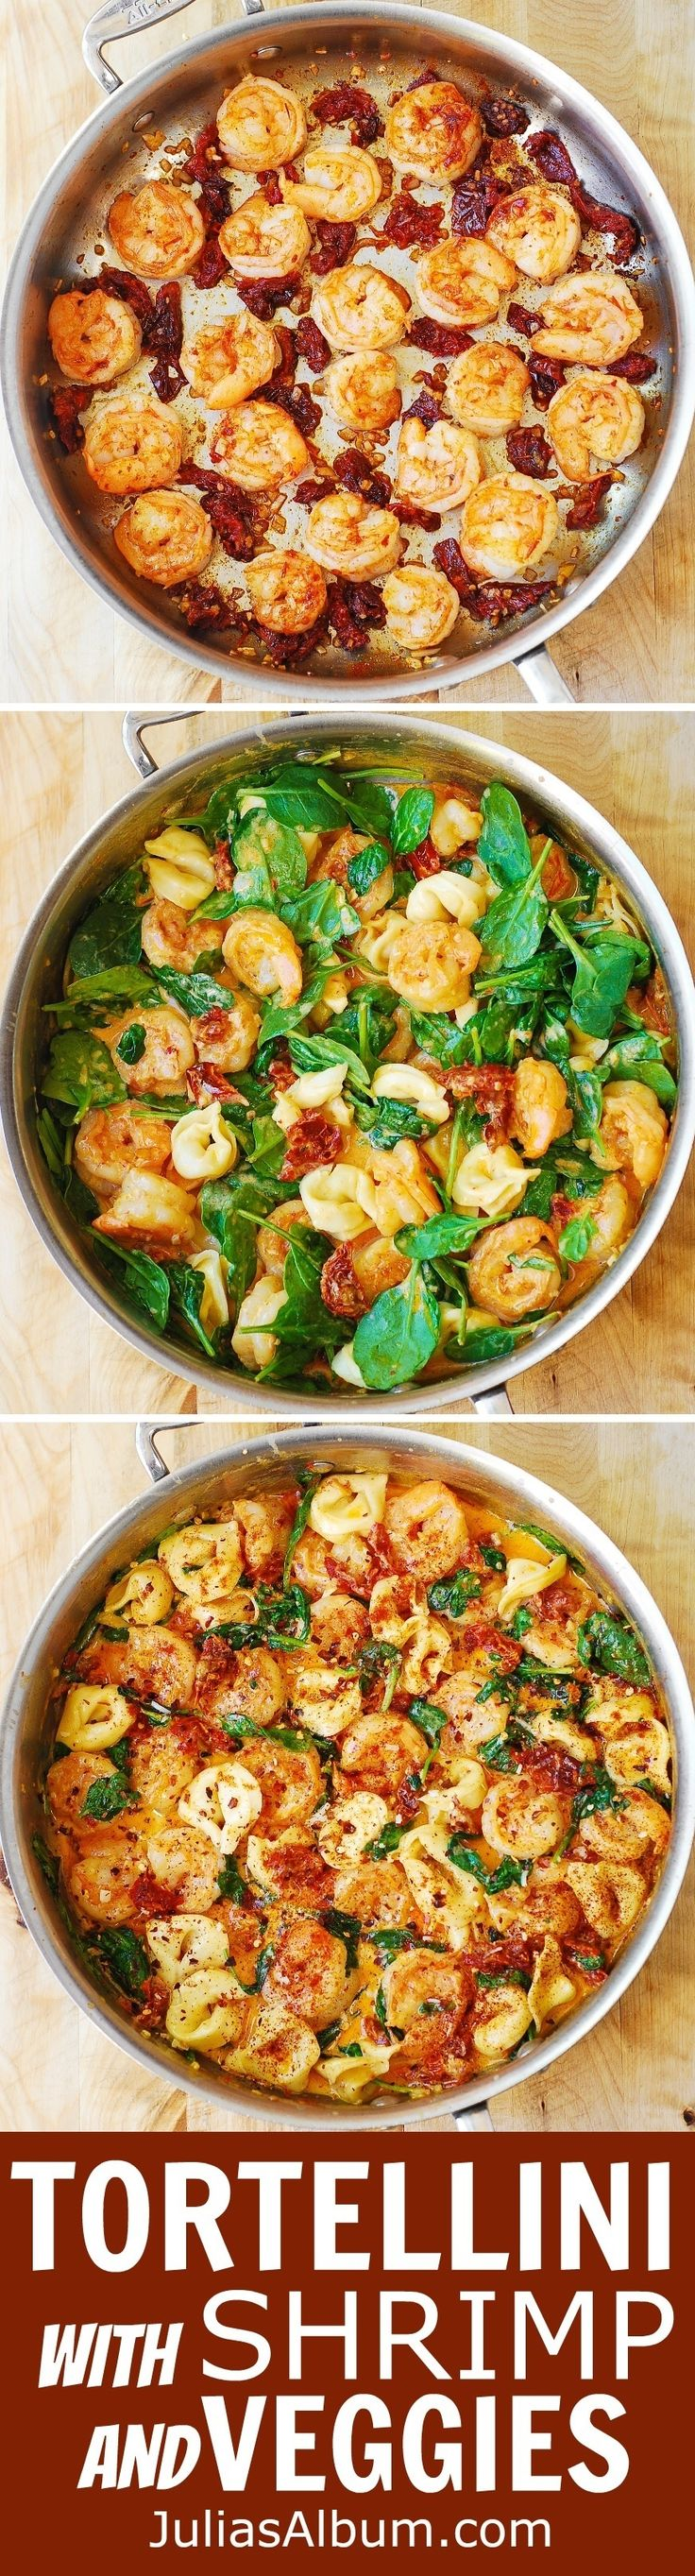 Creamy Tortellini with Shrimp and Veggies (pasta, dinner, vegetables)